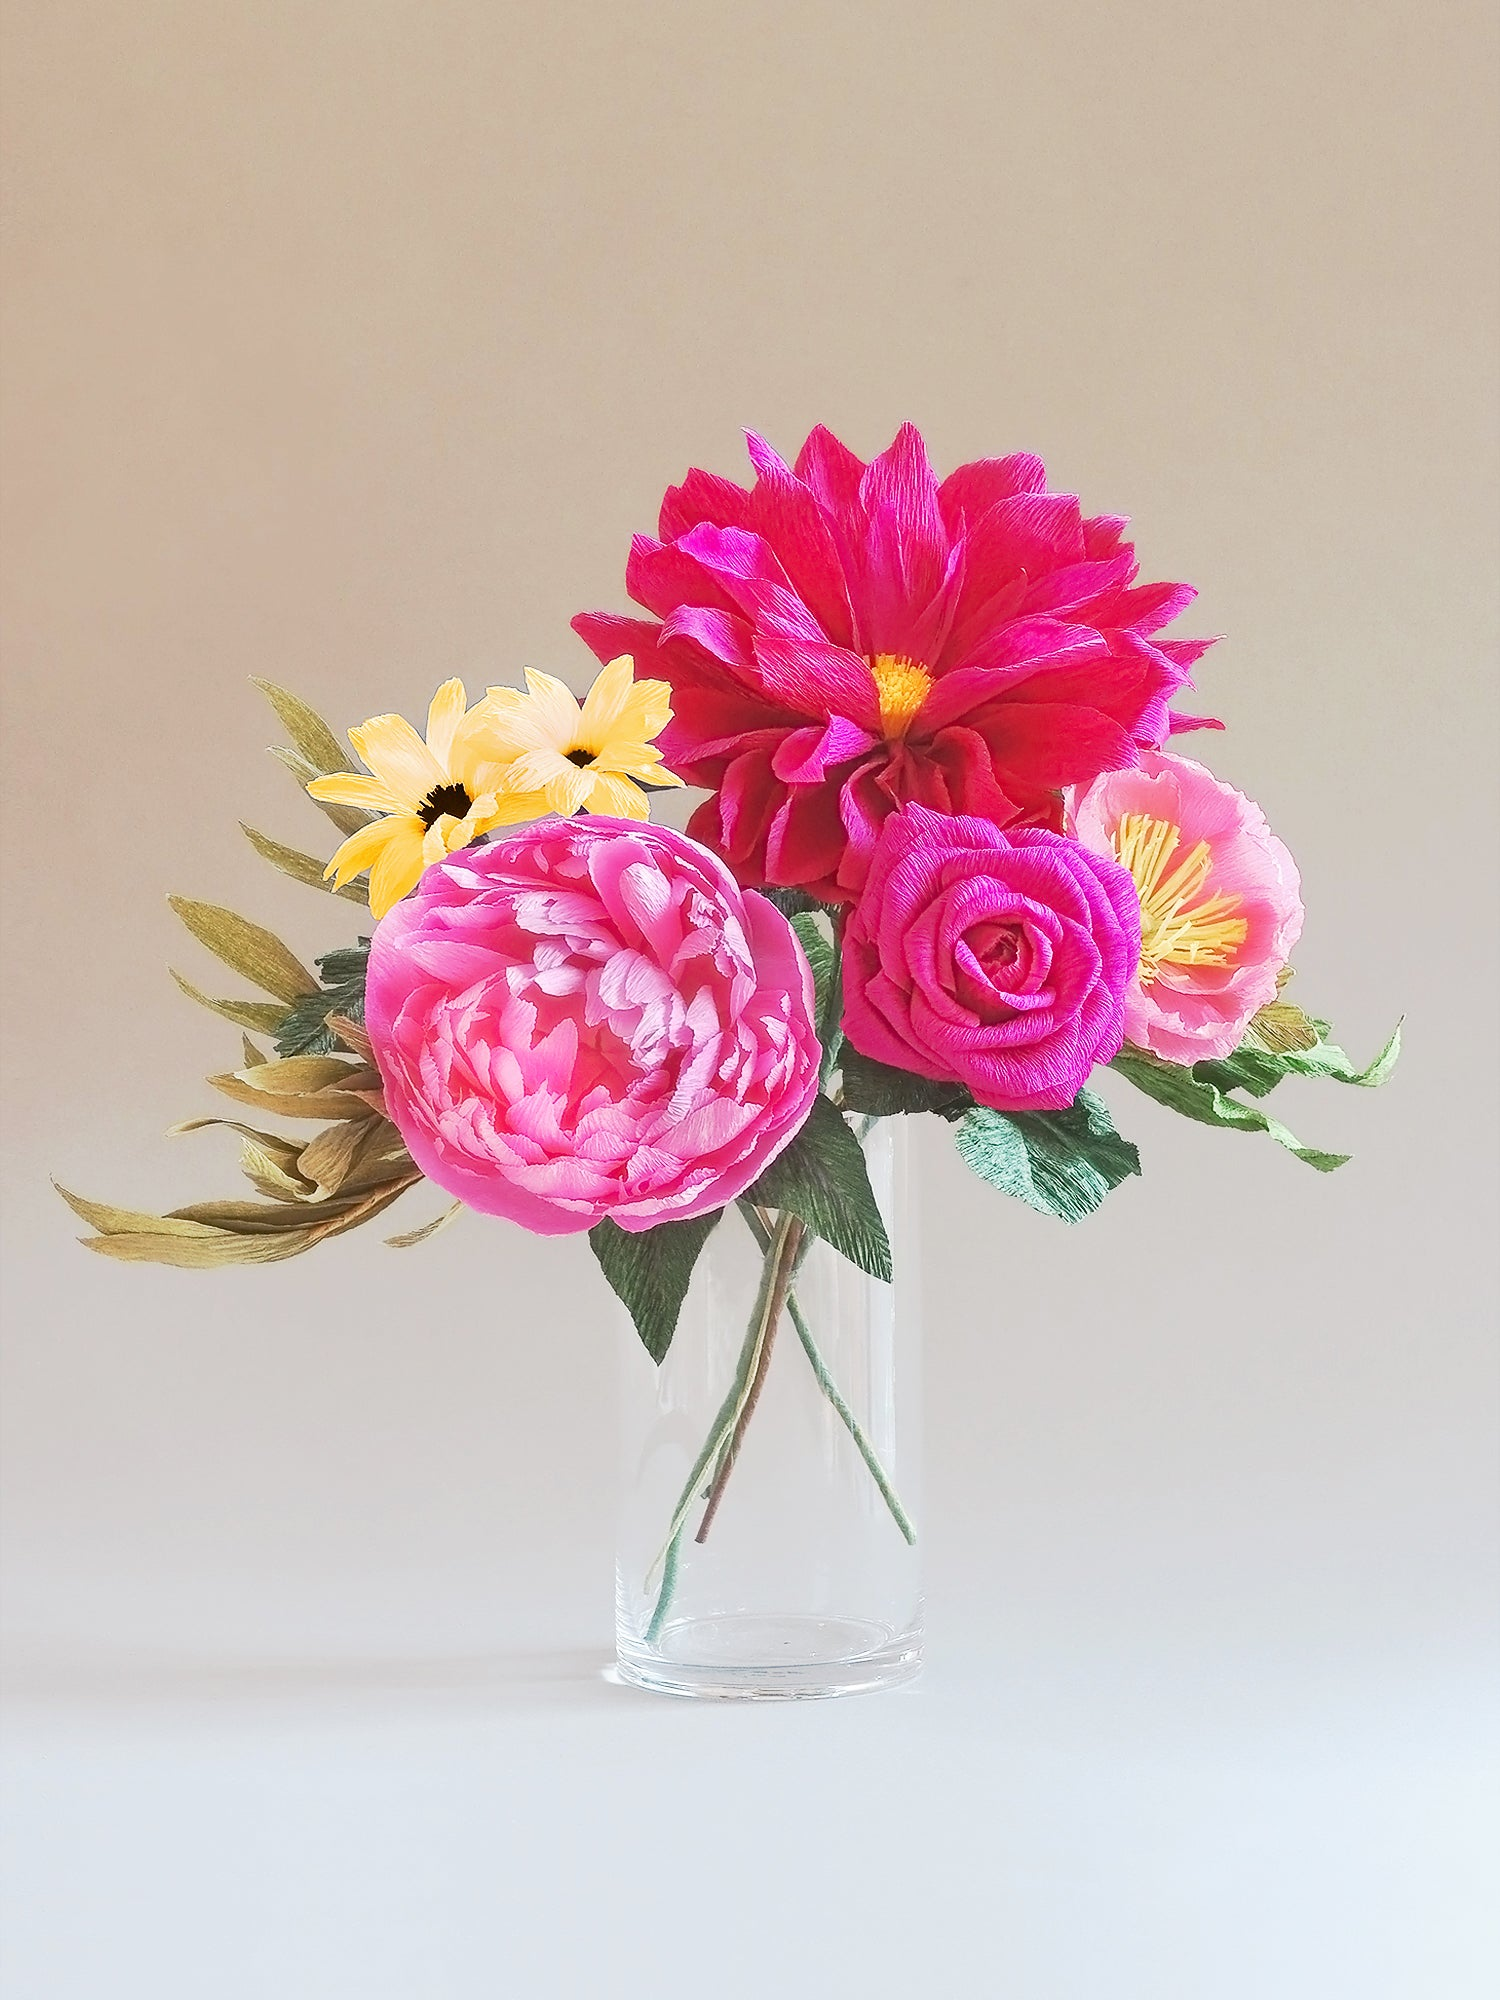 _<h1>Pink Skies Ahead</h1><p>Dramatic burgundy dahlia mixed with a bright pink peony, pale pink icelandic poppy and a hot pink rose.  Bright yellow diaies and mixed stems of greenery complete this bouquet.</p>